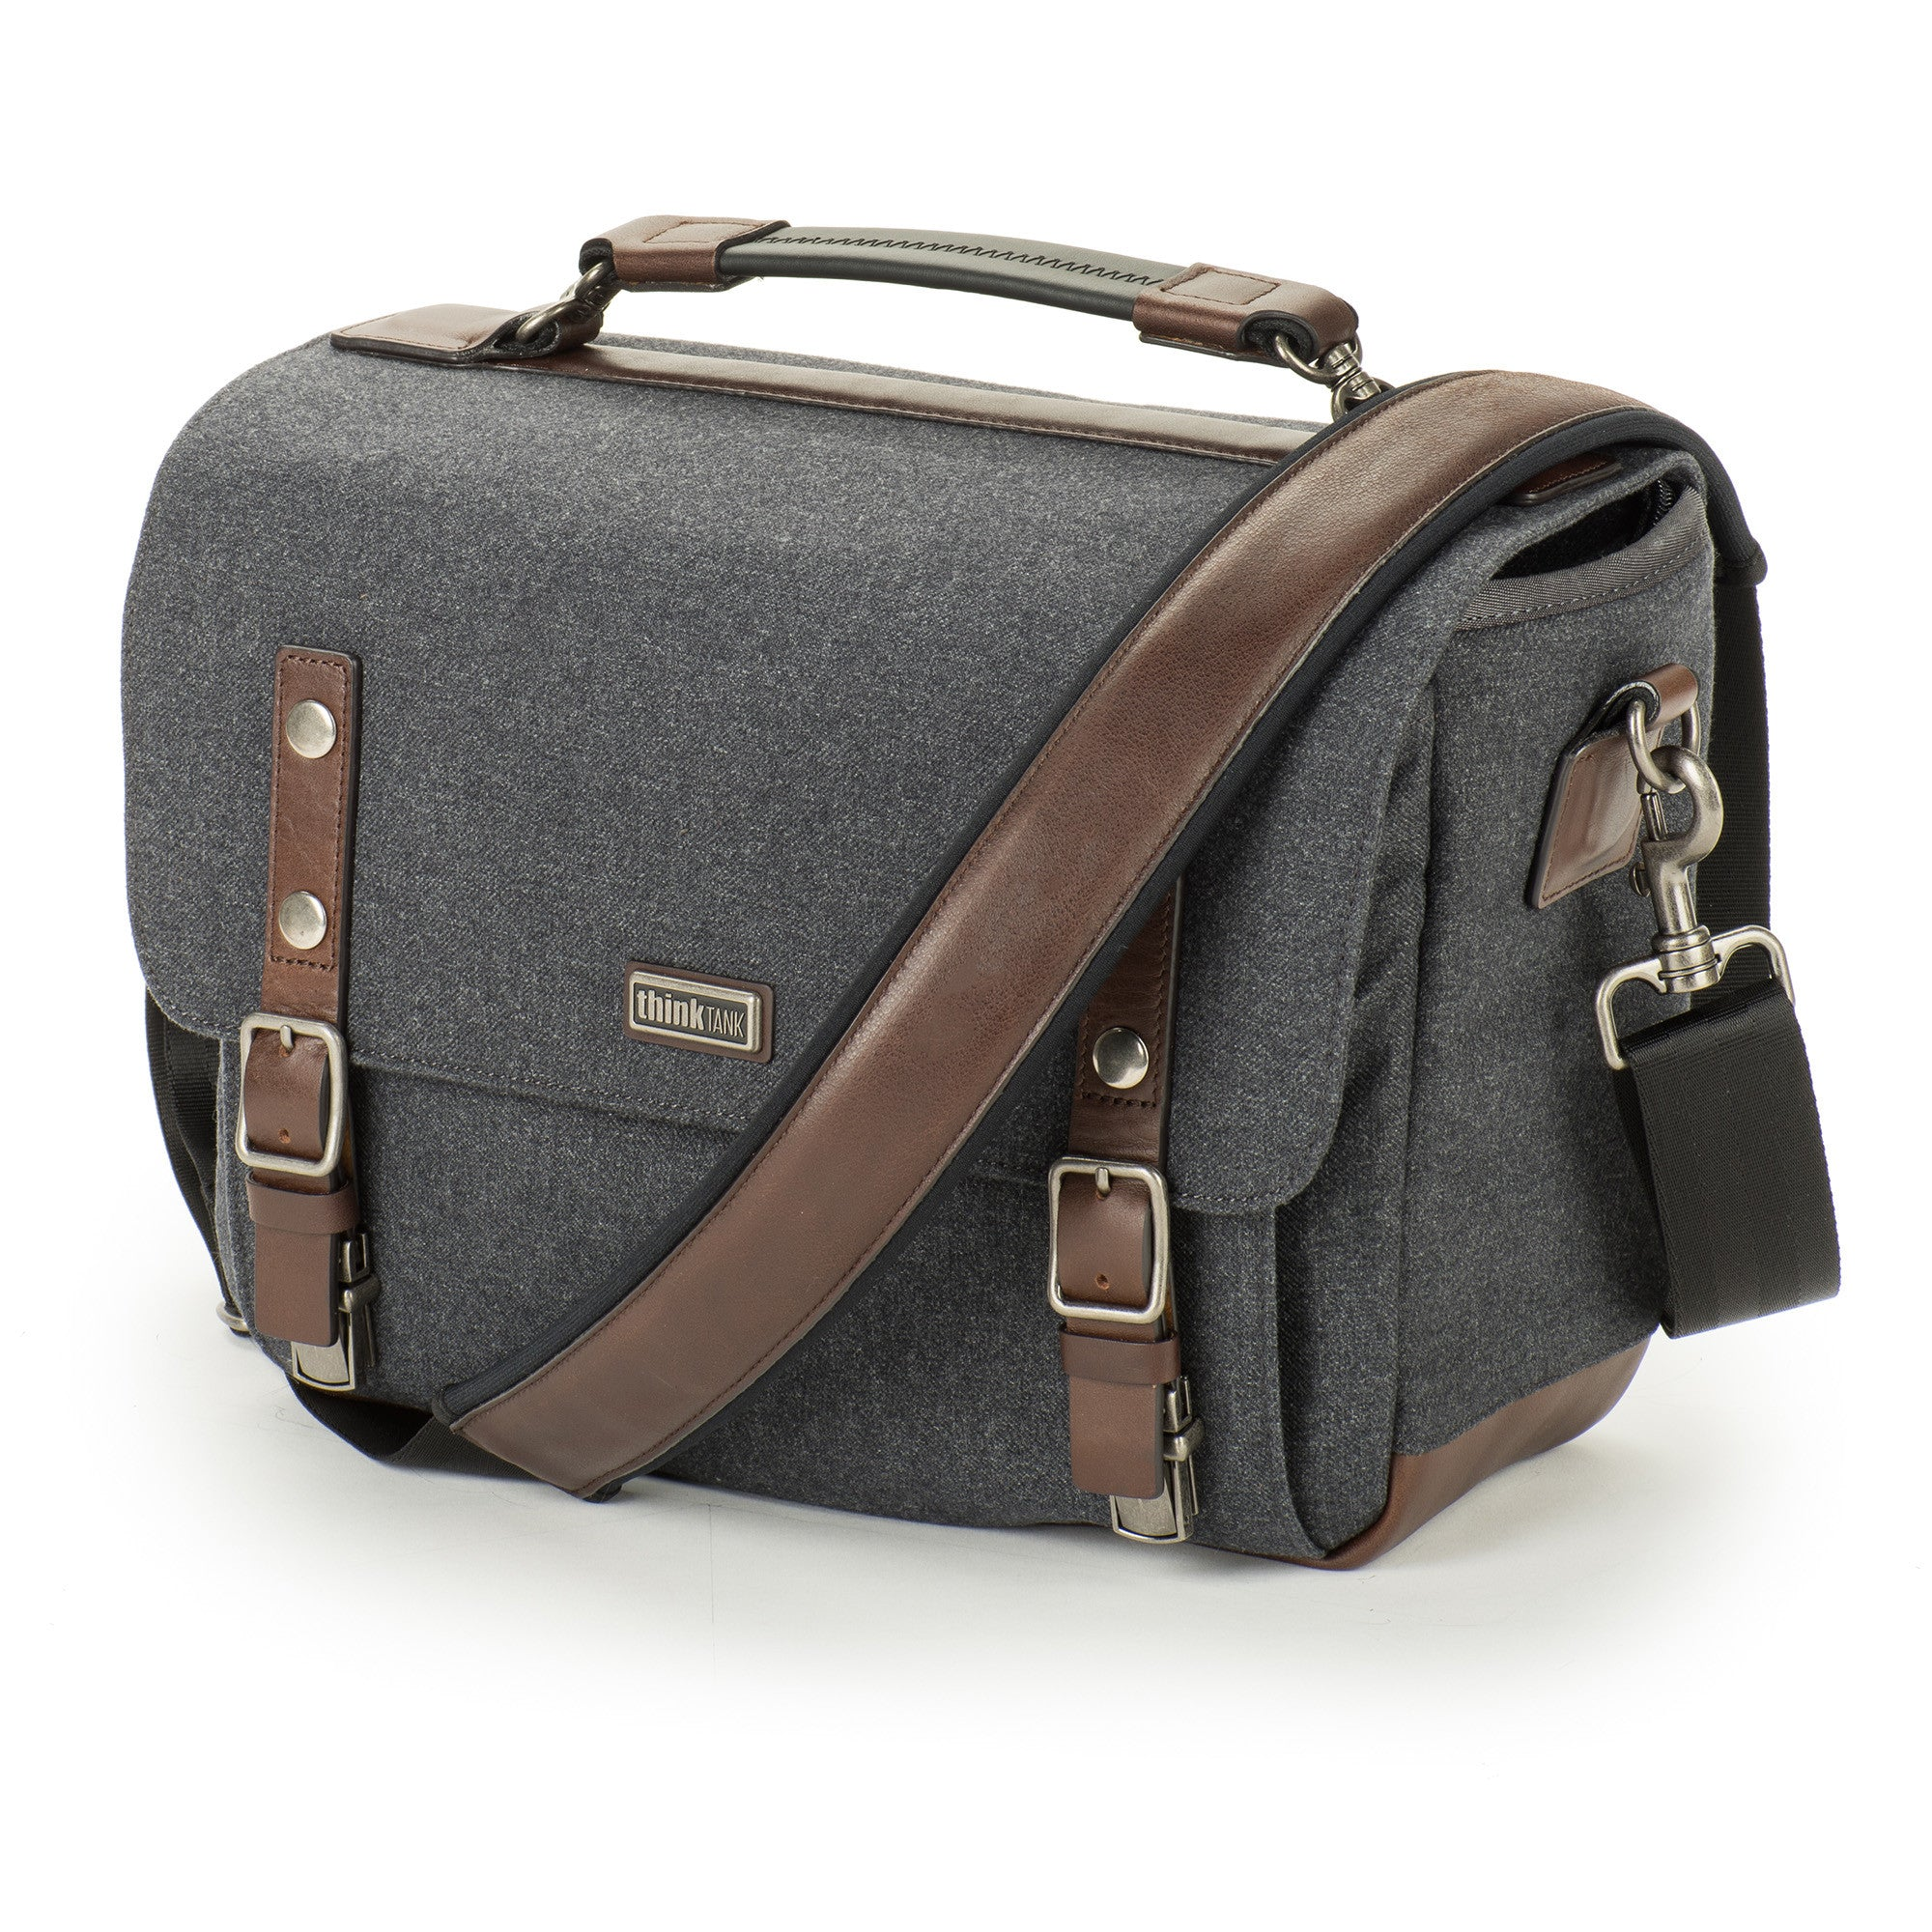 Full-grain leather bottom and detailing, plus antique finished metal hardware